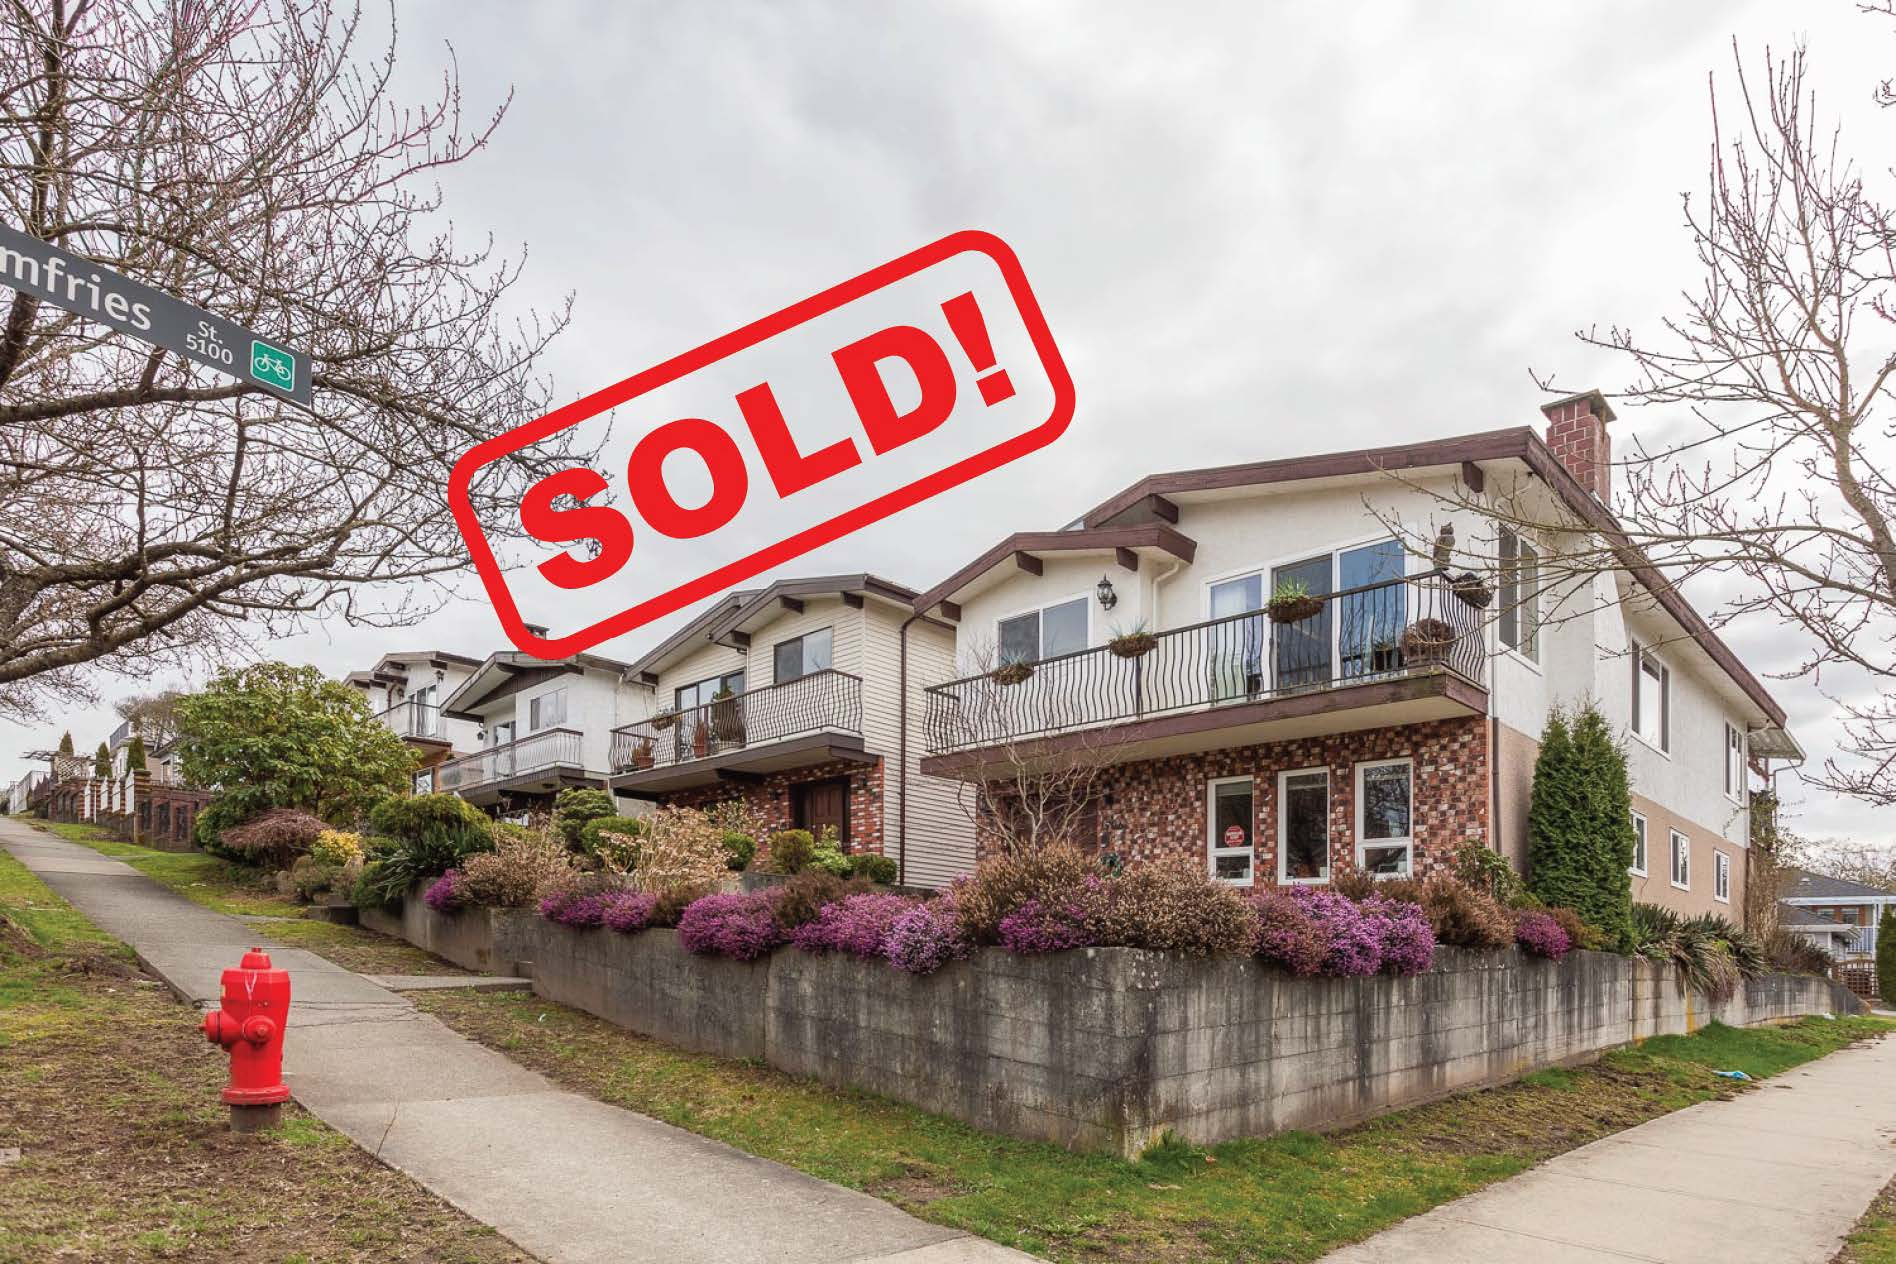 1506 E 35th ave   SOLD FOR: $1,550,000  5 Bed | 3 Bath | 2,245 SF